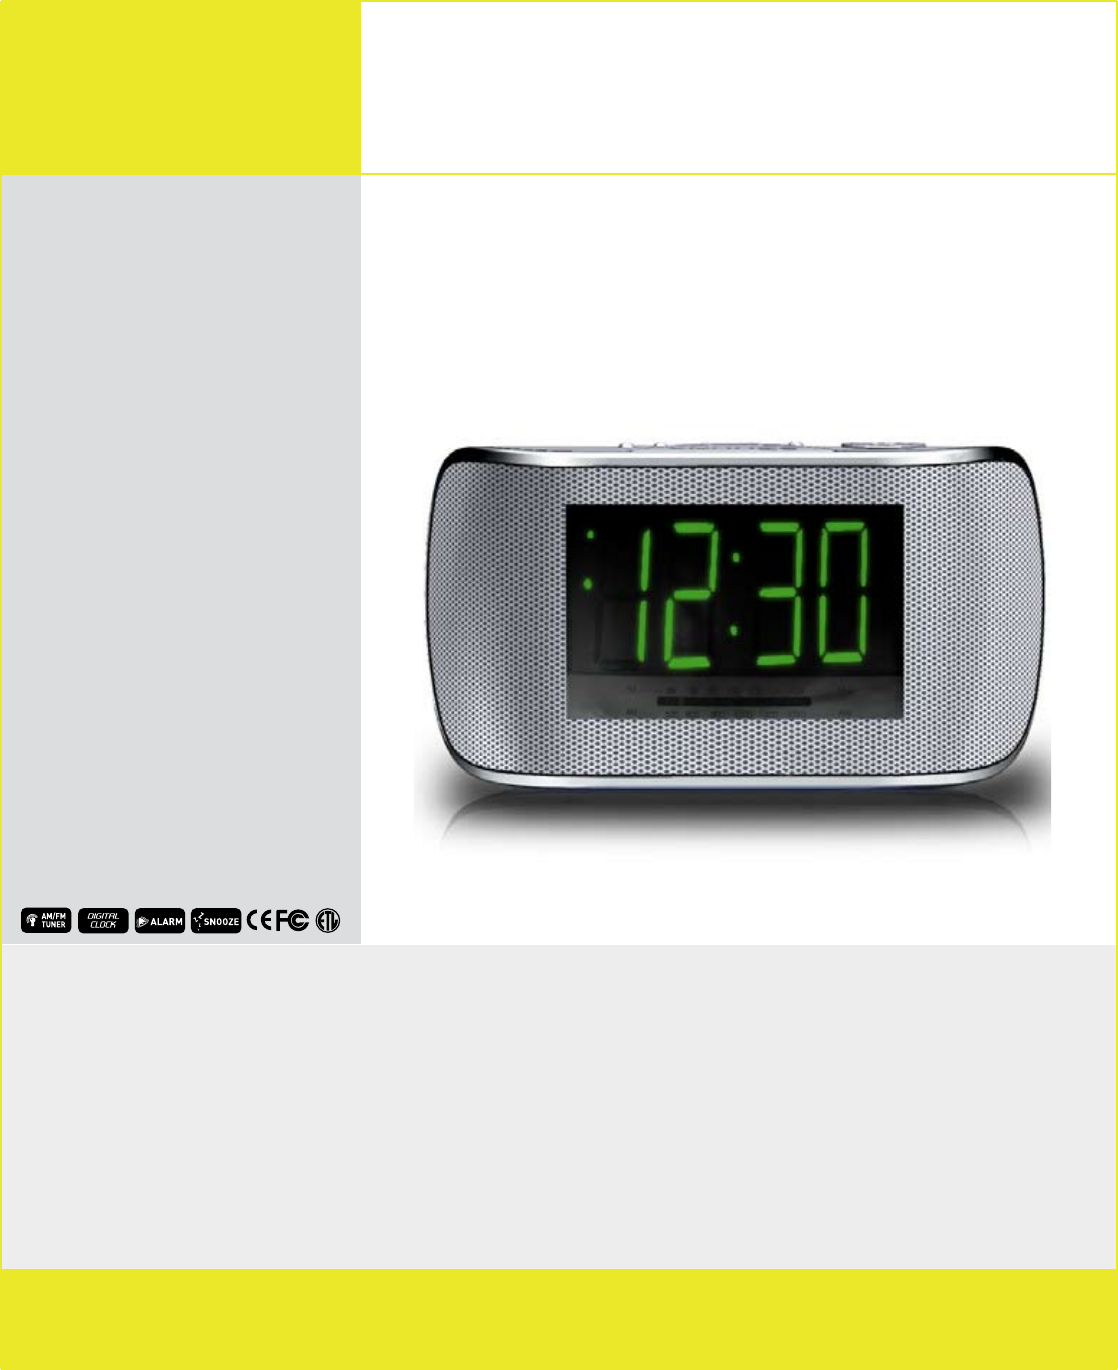 COBY electronic CR-A108 Clock Radio User Manual